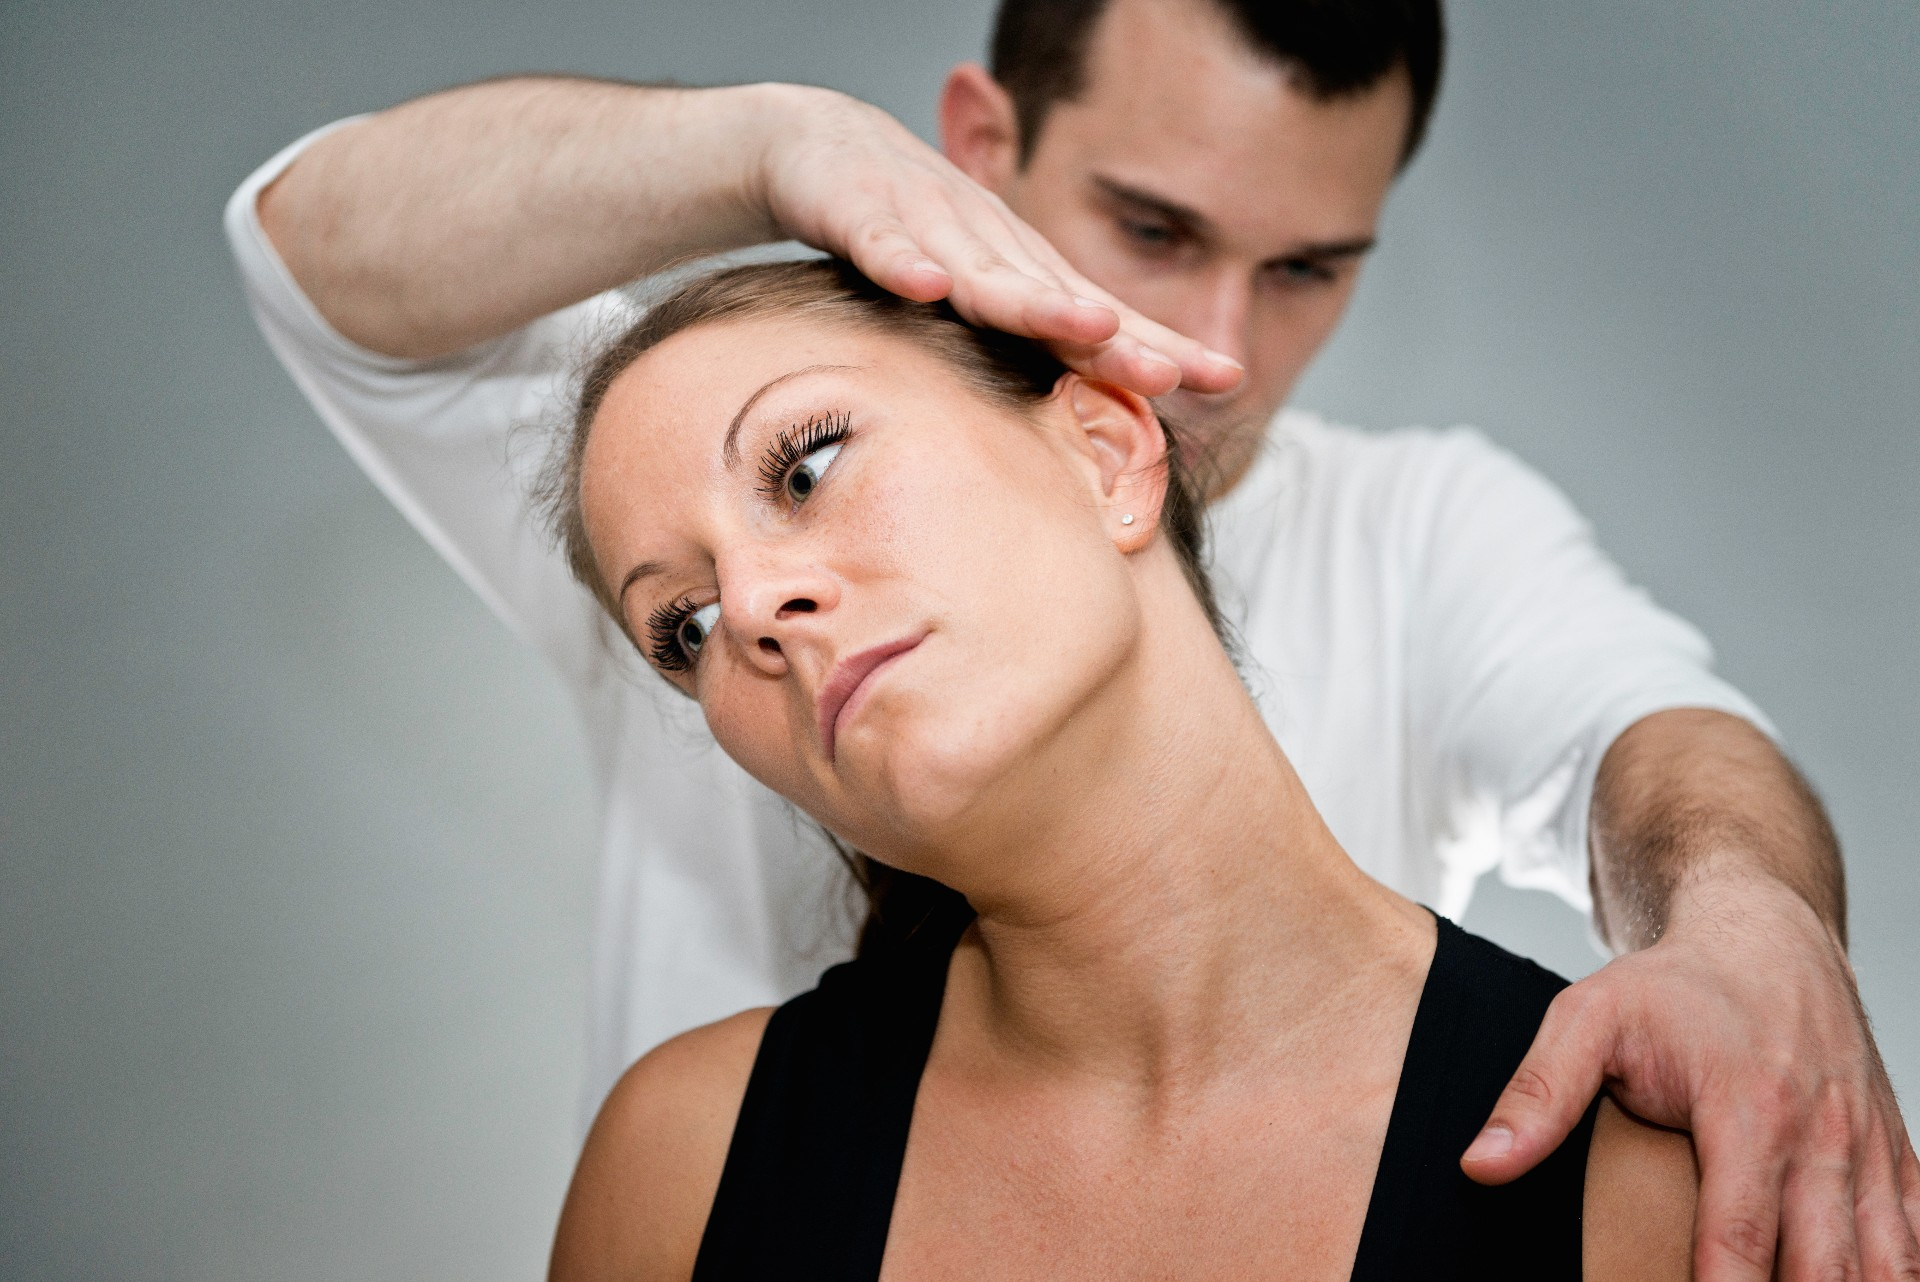 What to Expect At Your First Visit to the Chiropractor